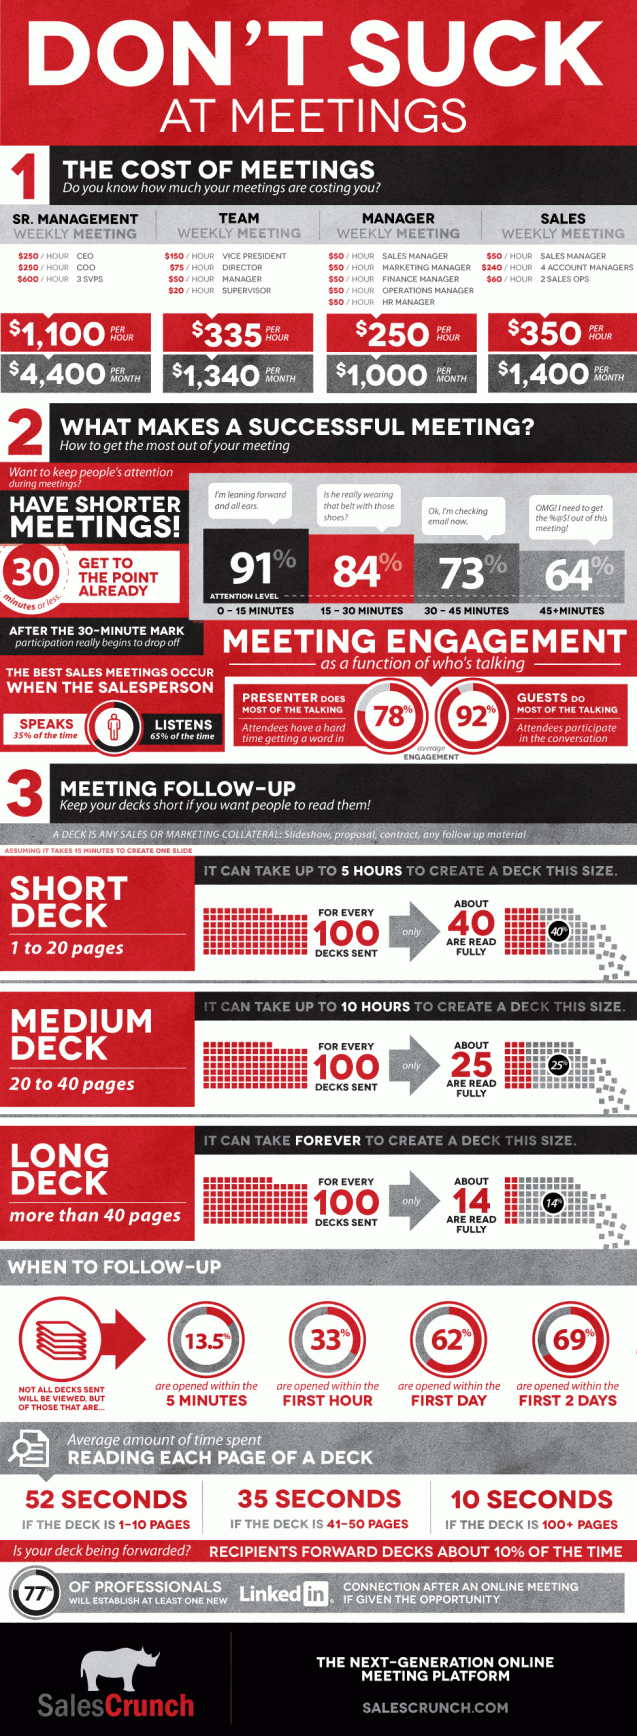 How Much Money Are Your Meetings Costing You?